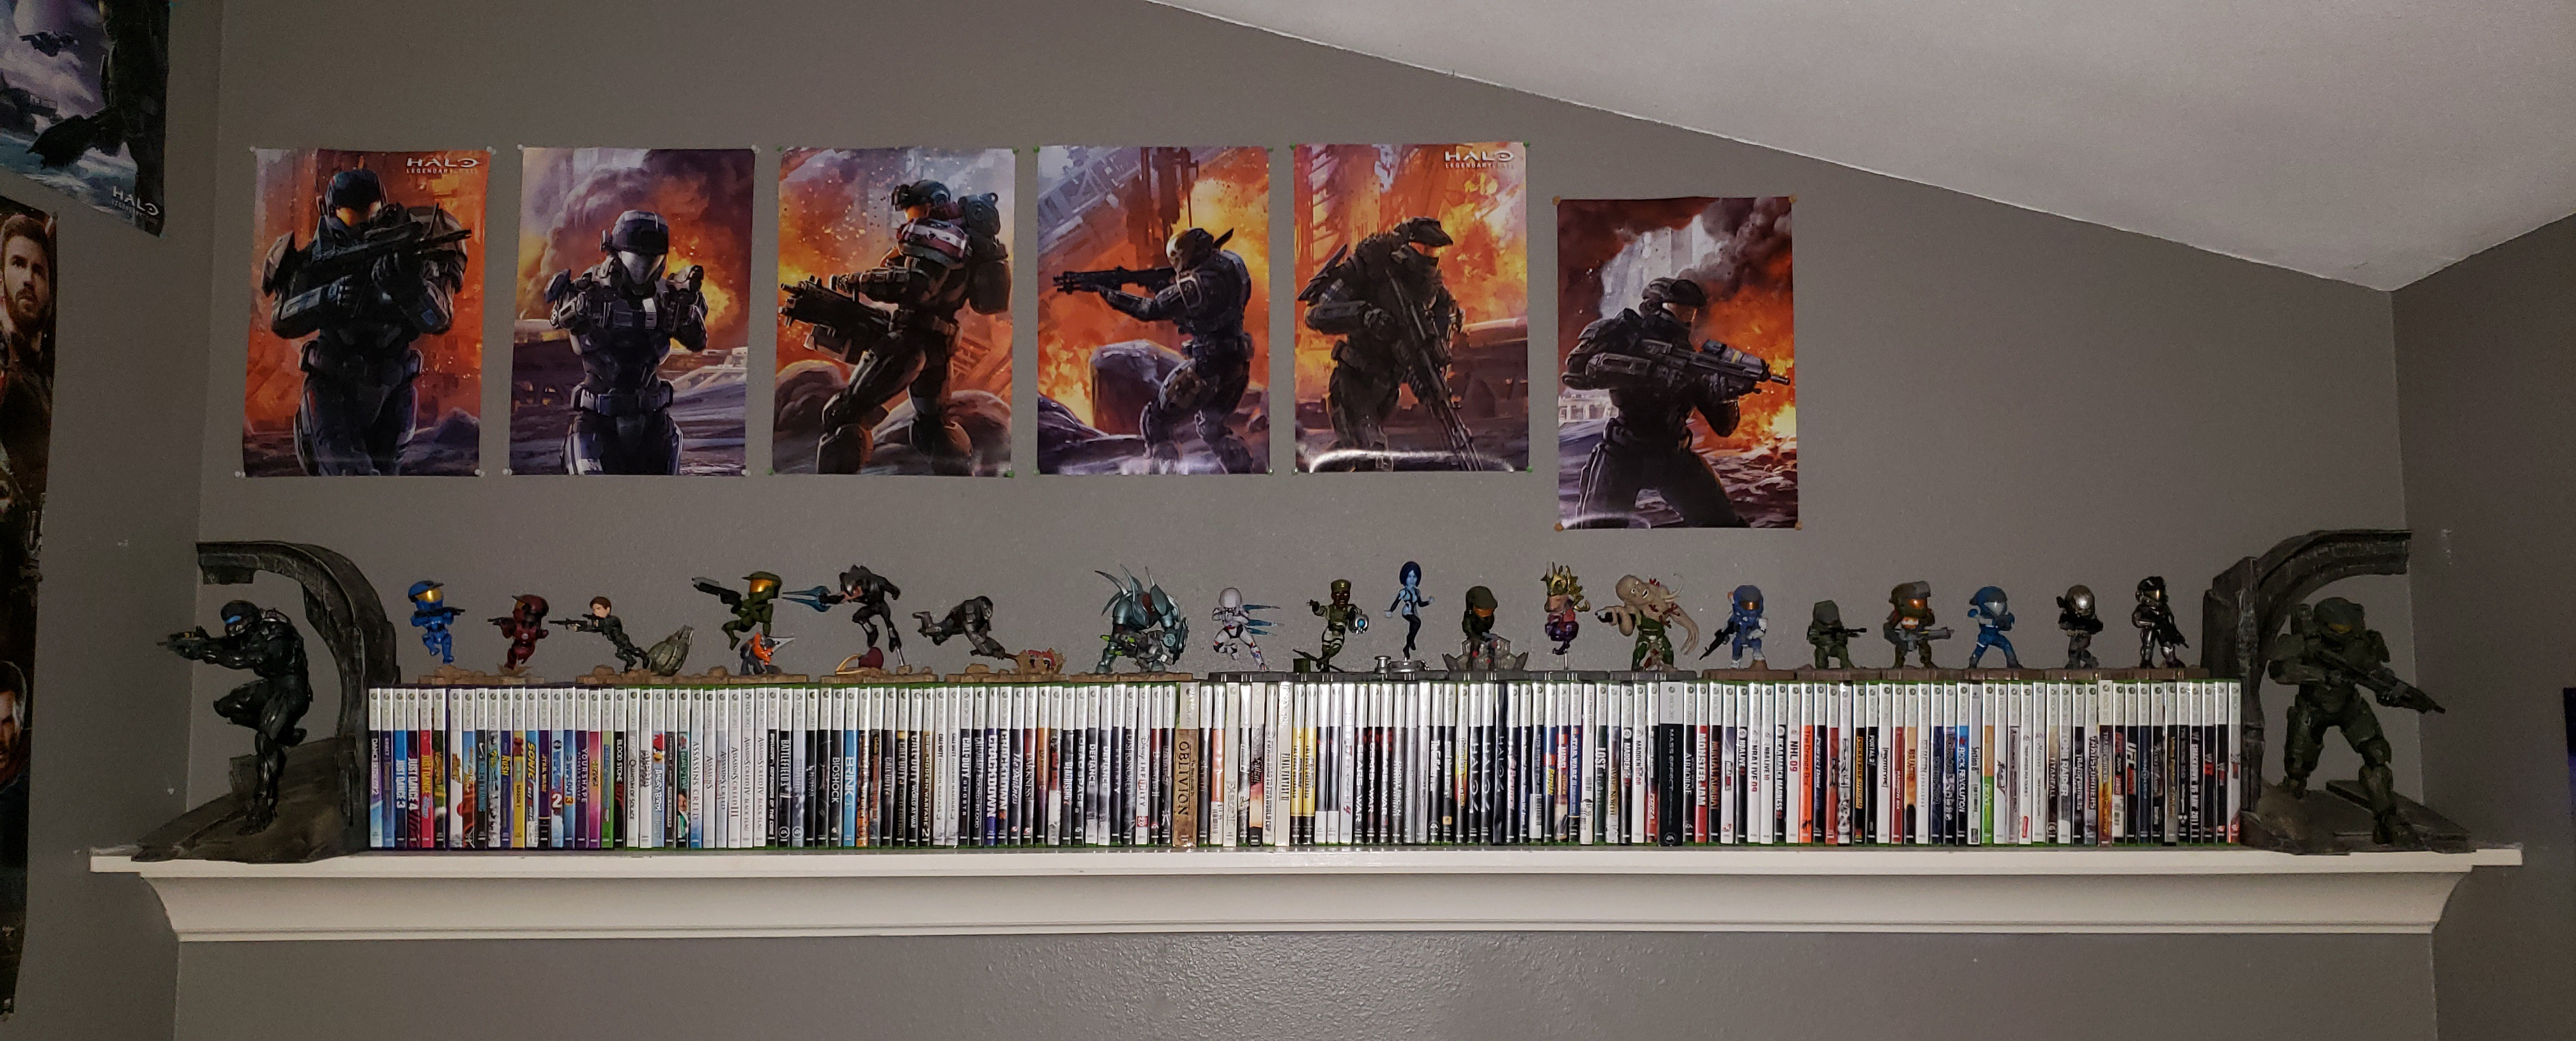 Dedicated Halo Lootcrate Subscriber